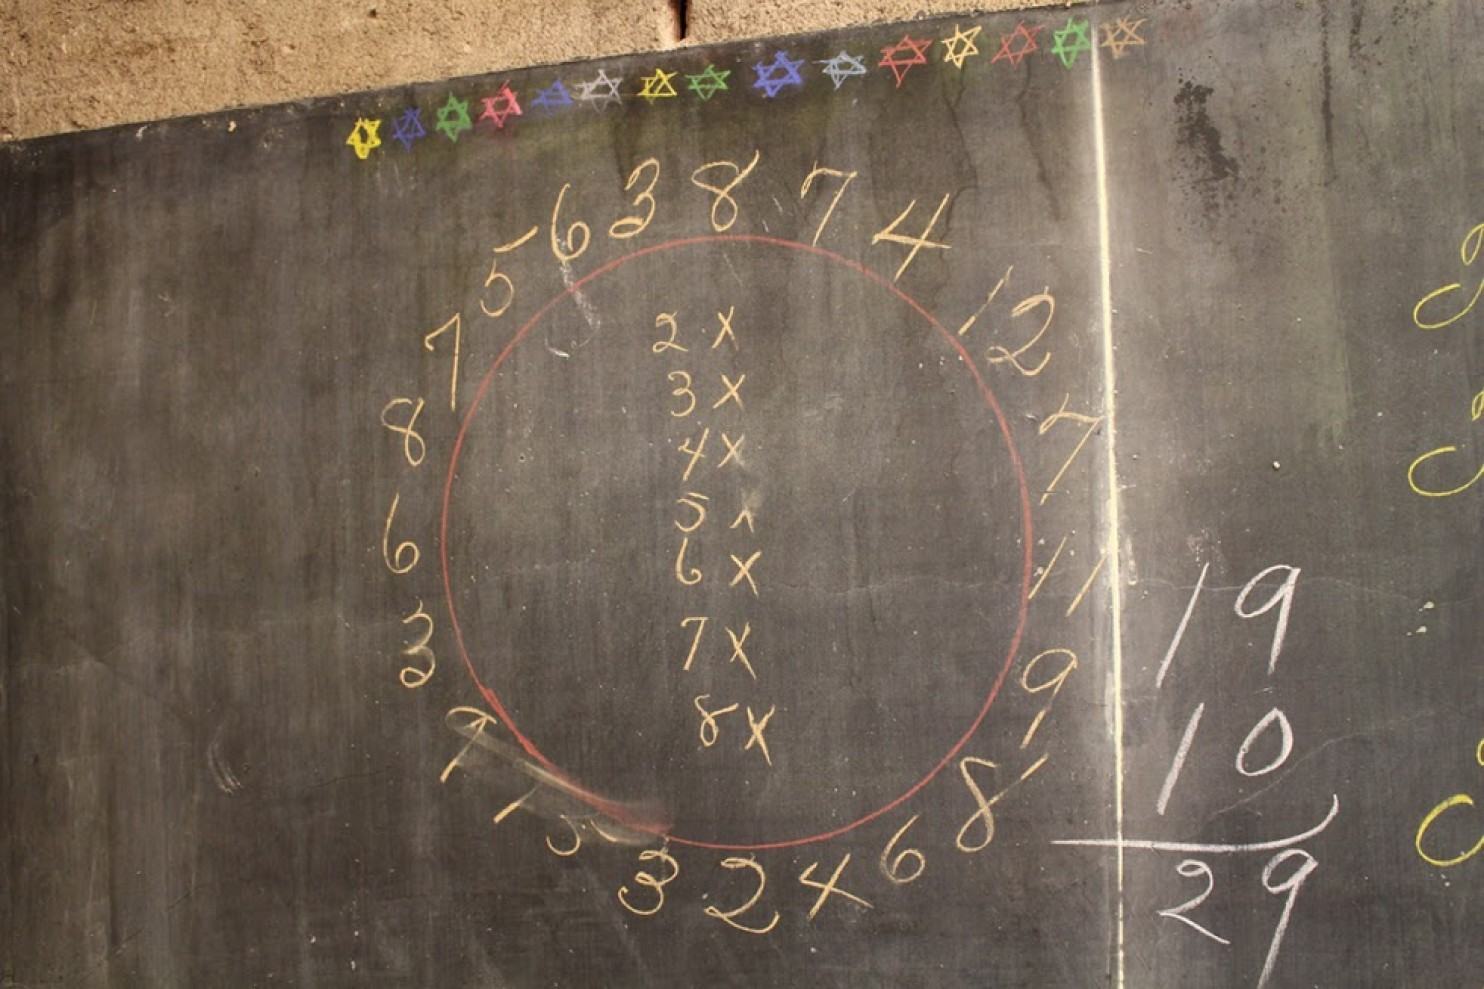 Chalkboard Lesson Discovered from 1917